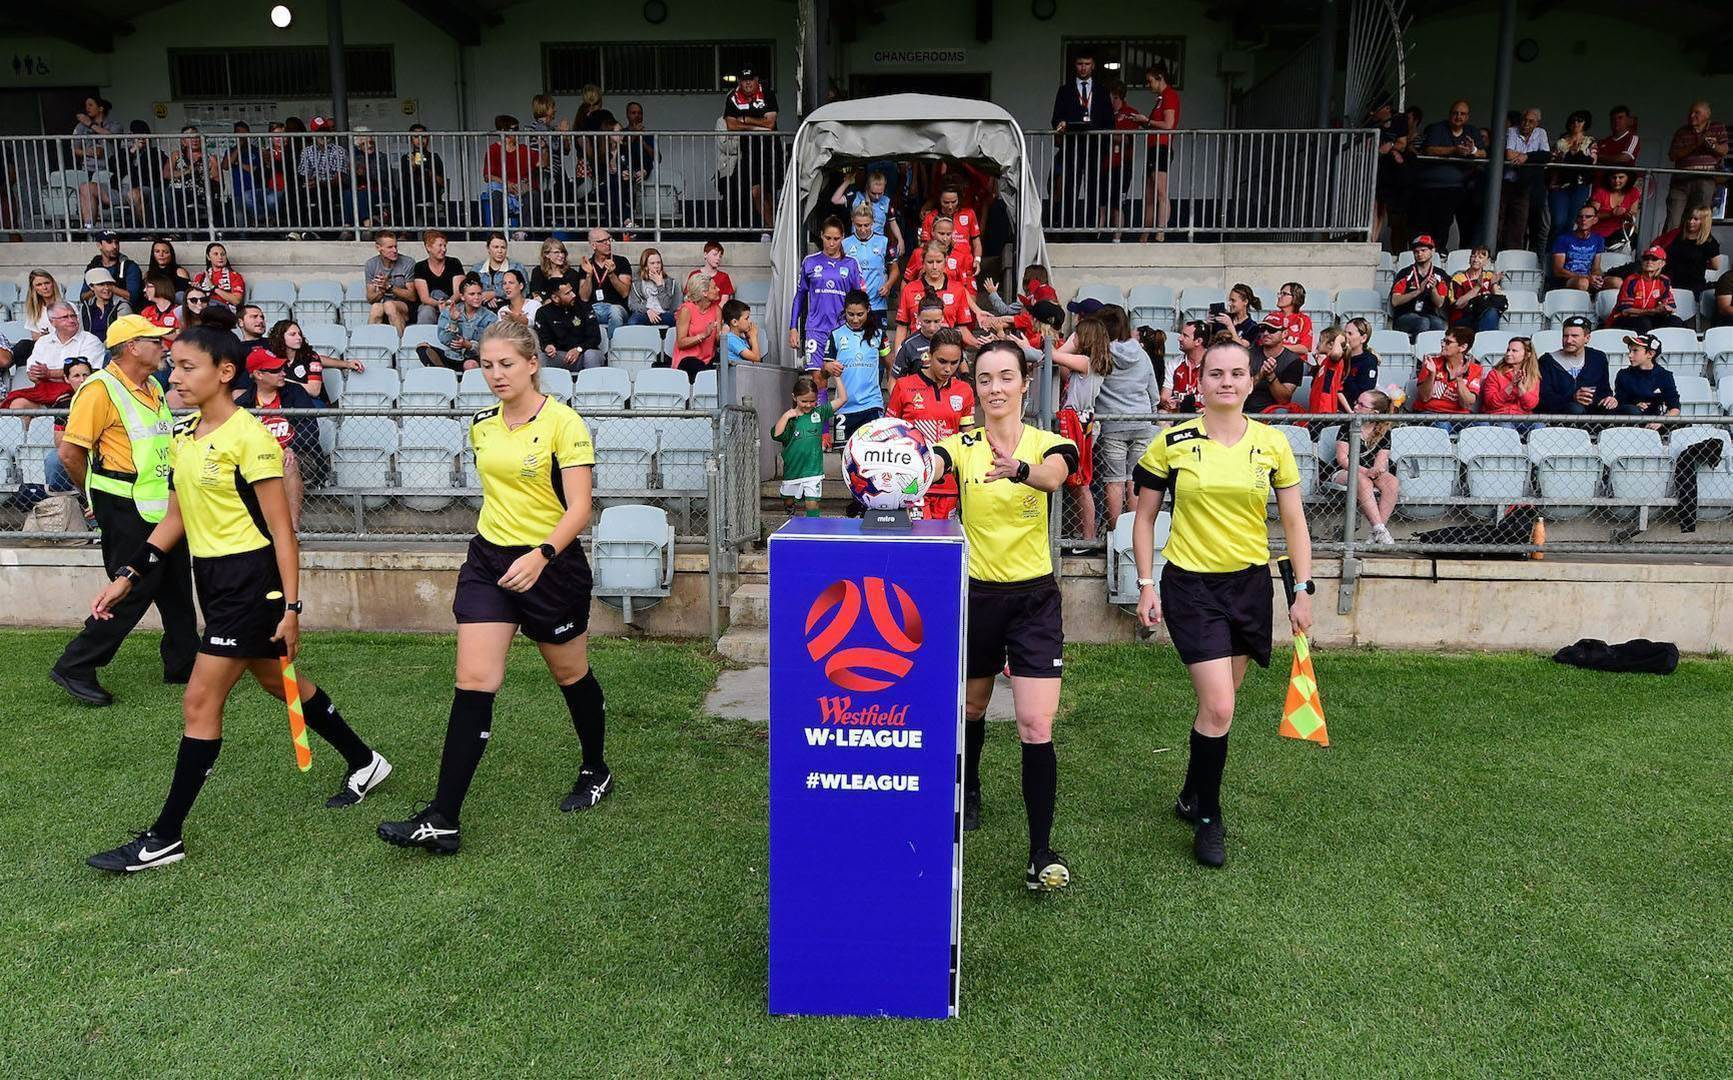 W-League Draw: Who comes out on top?